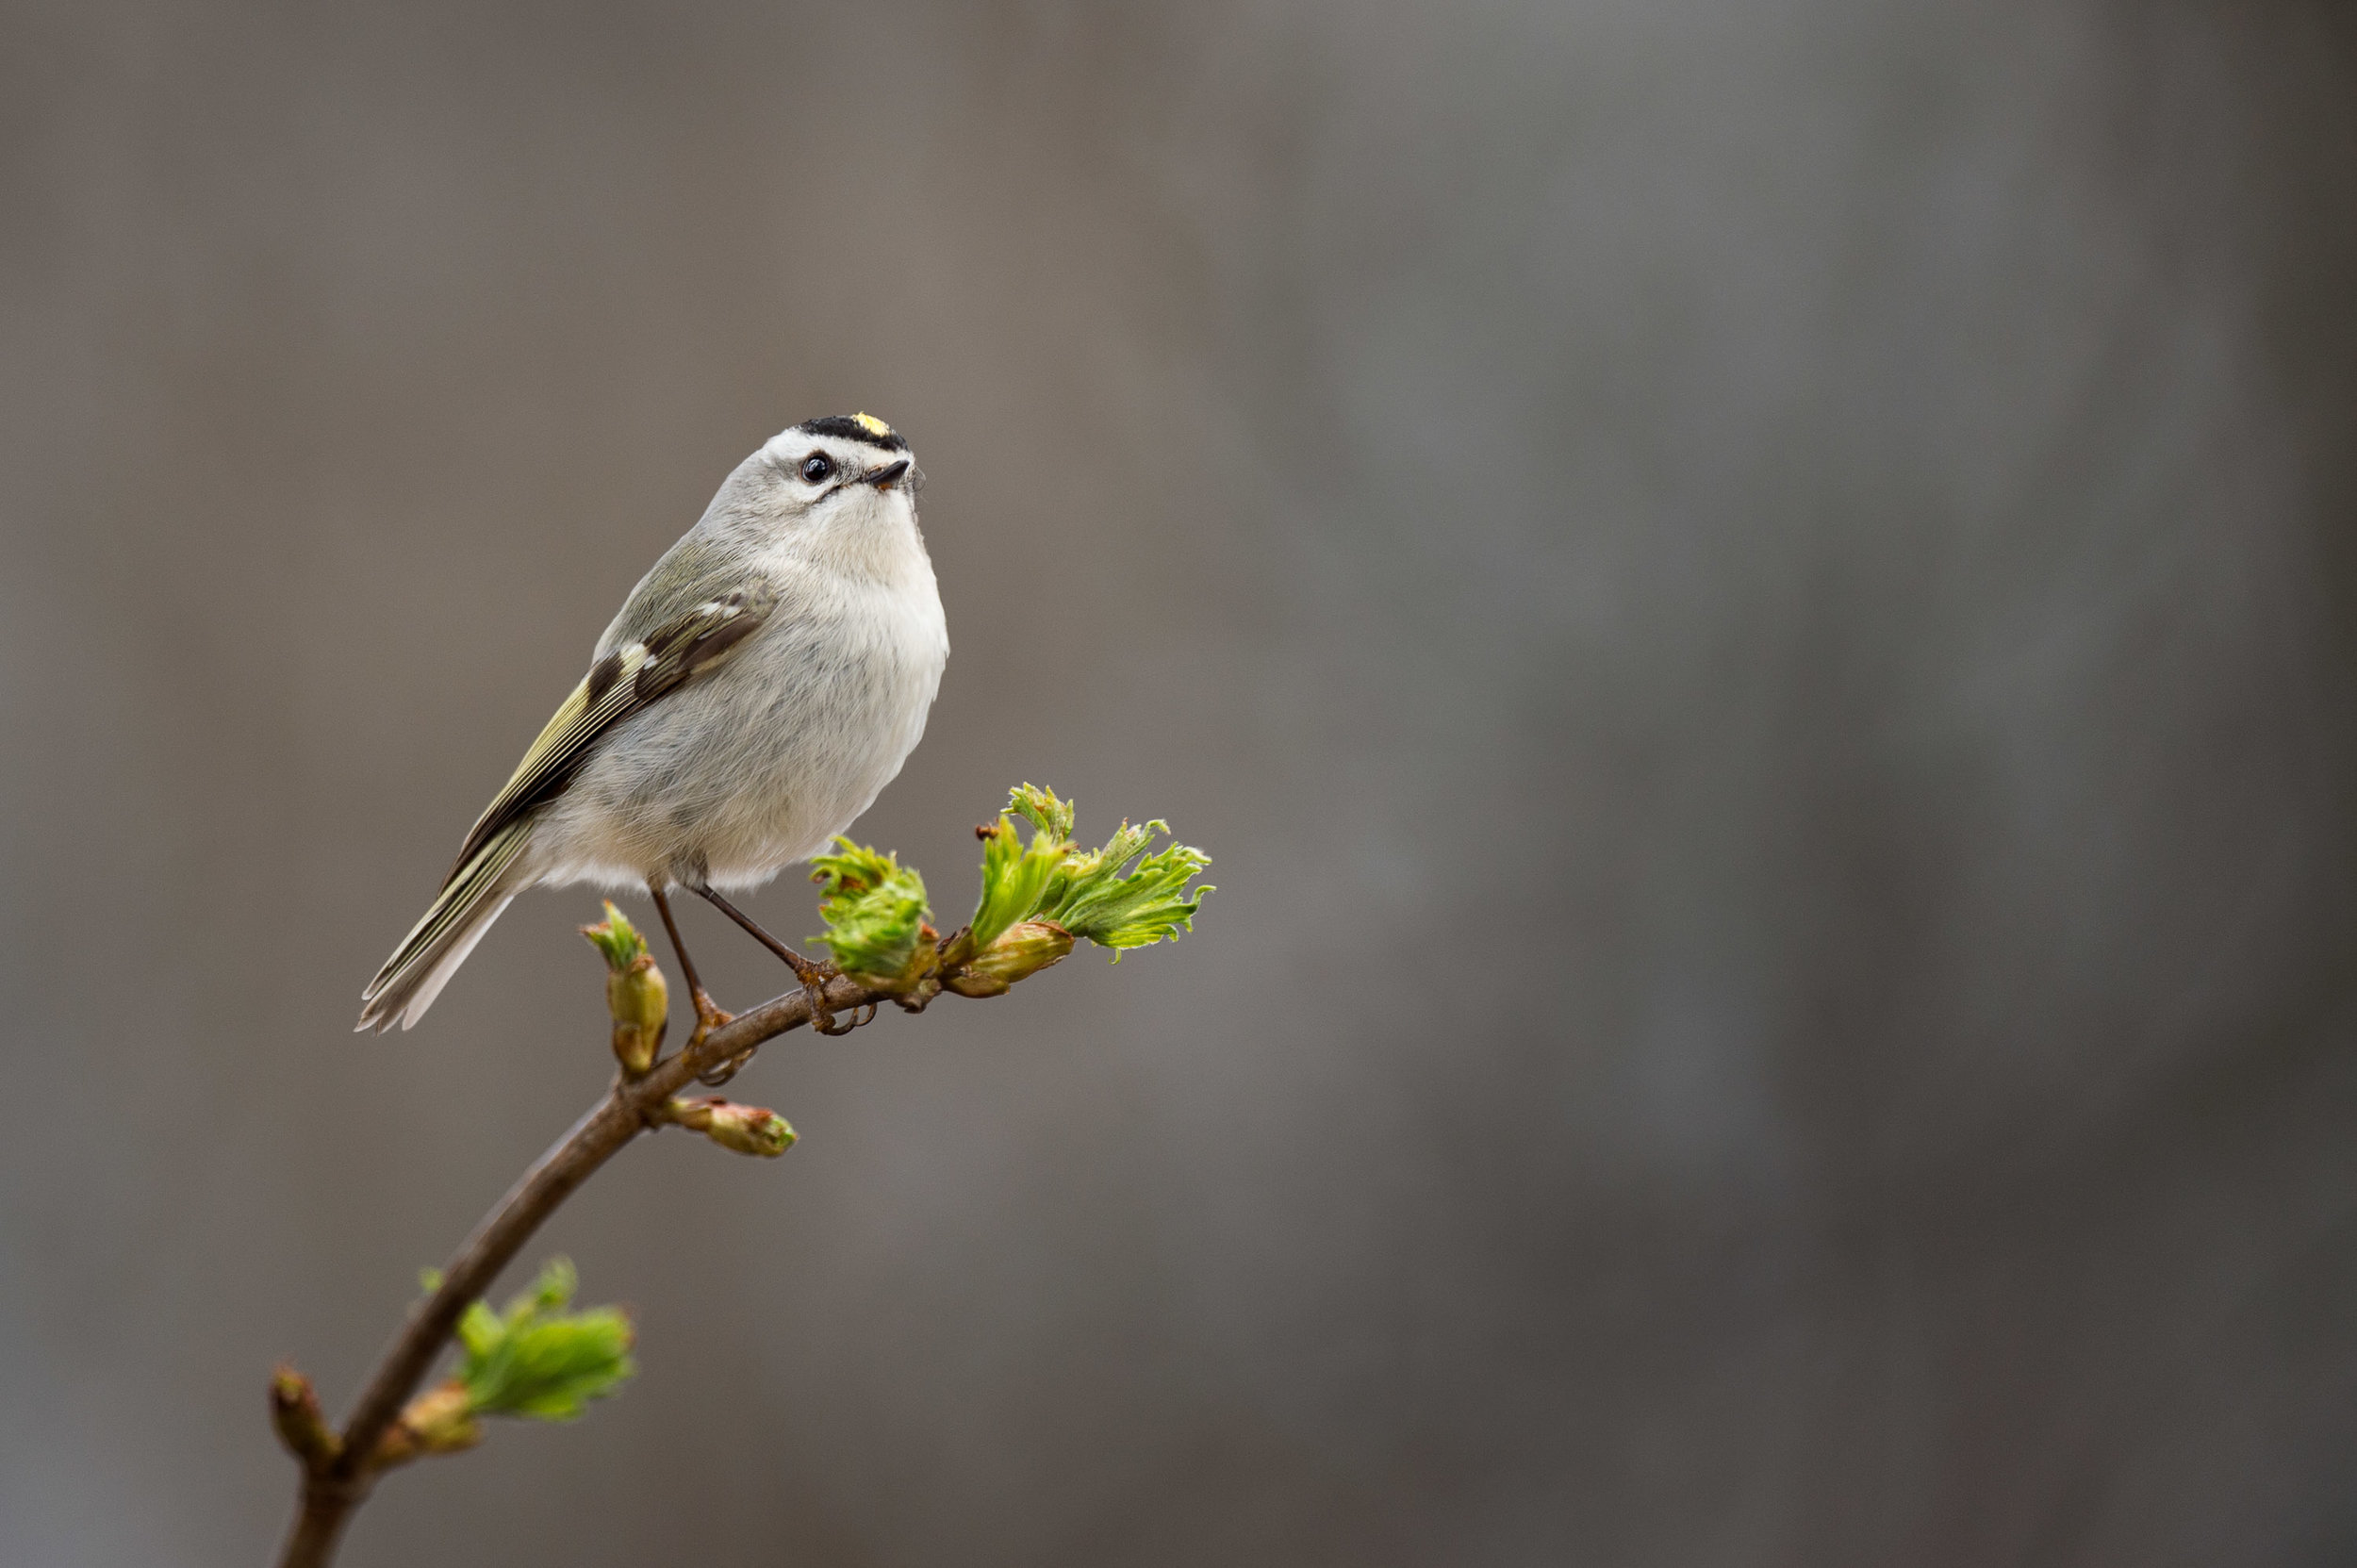 A Golden-crowned Kinglet perches atop a branch with fresh green leaves just starting to appear.